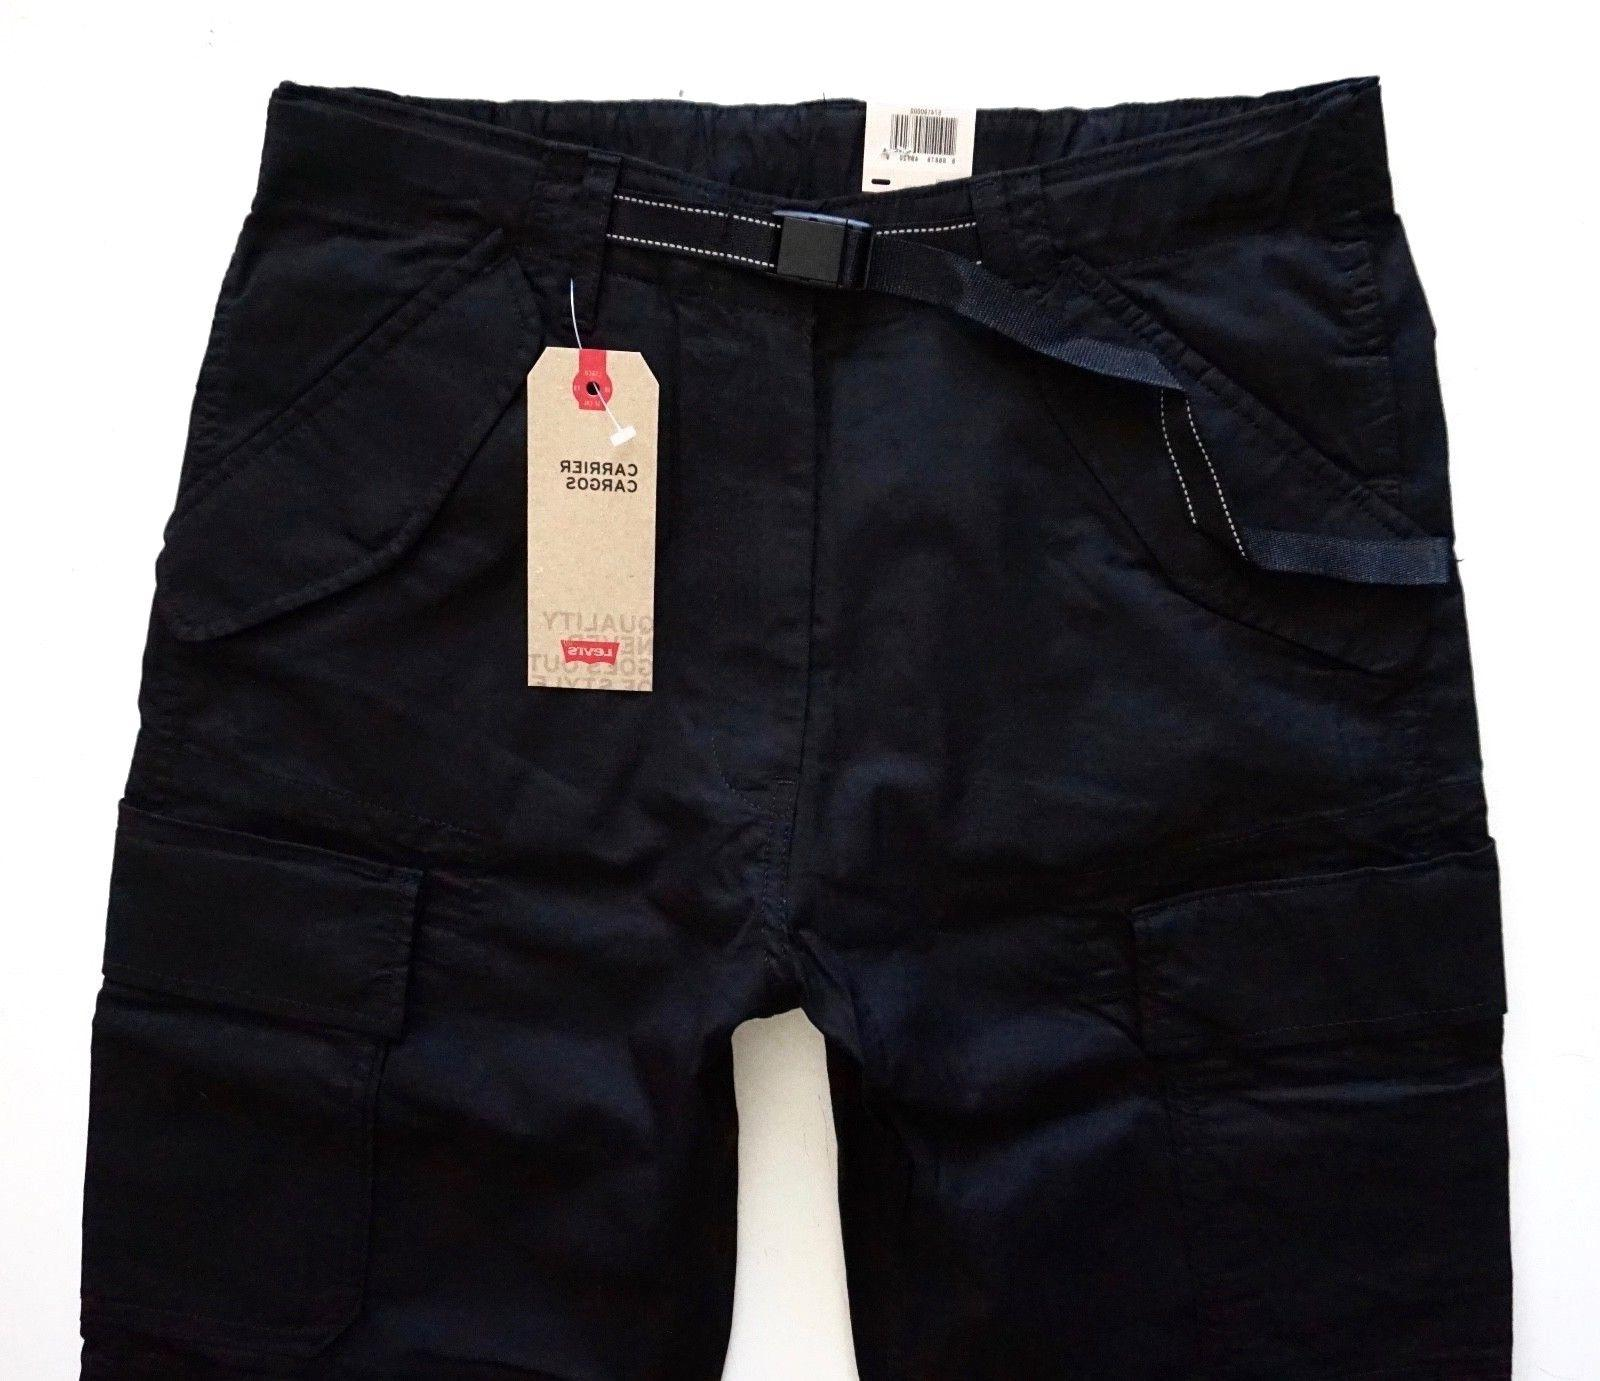 Levi's Nwt 574190000 Military Carrier Cargo Stretch Pant Pants